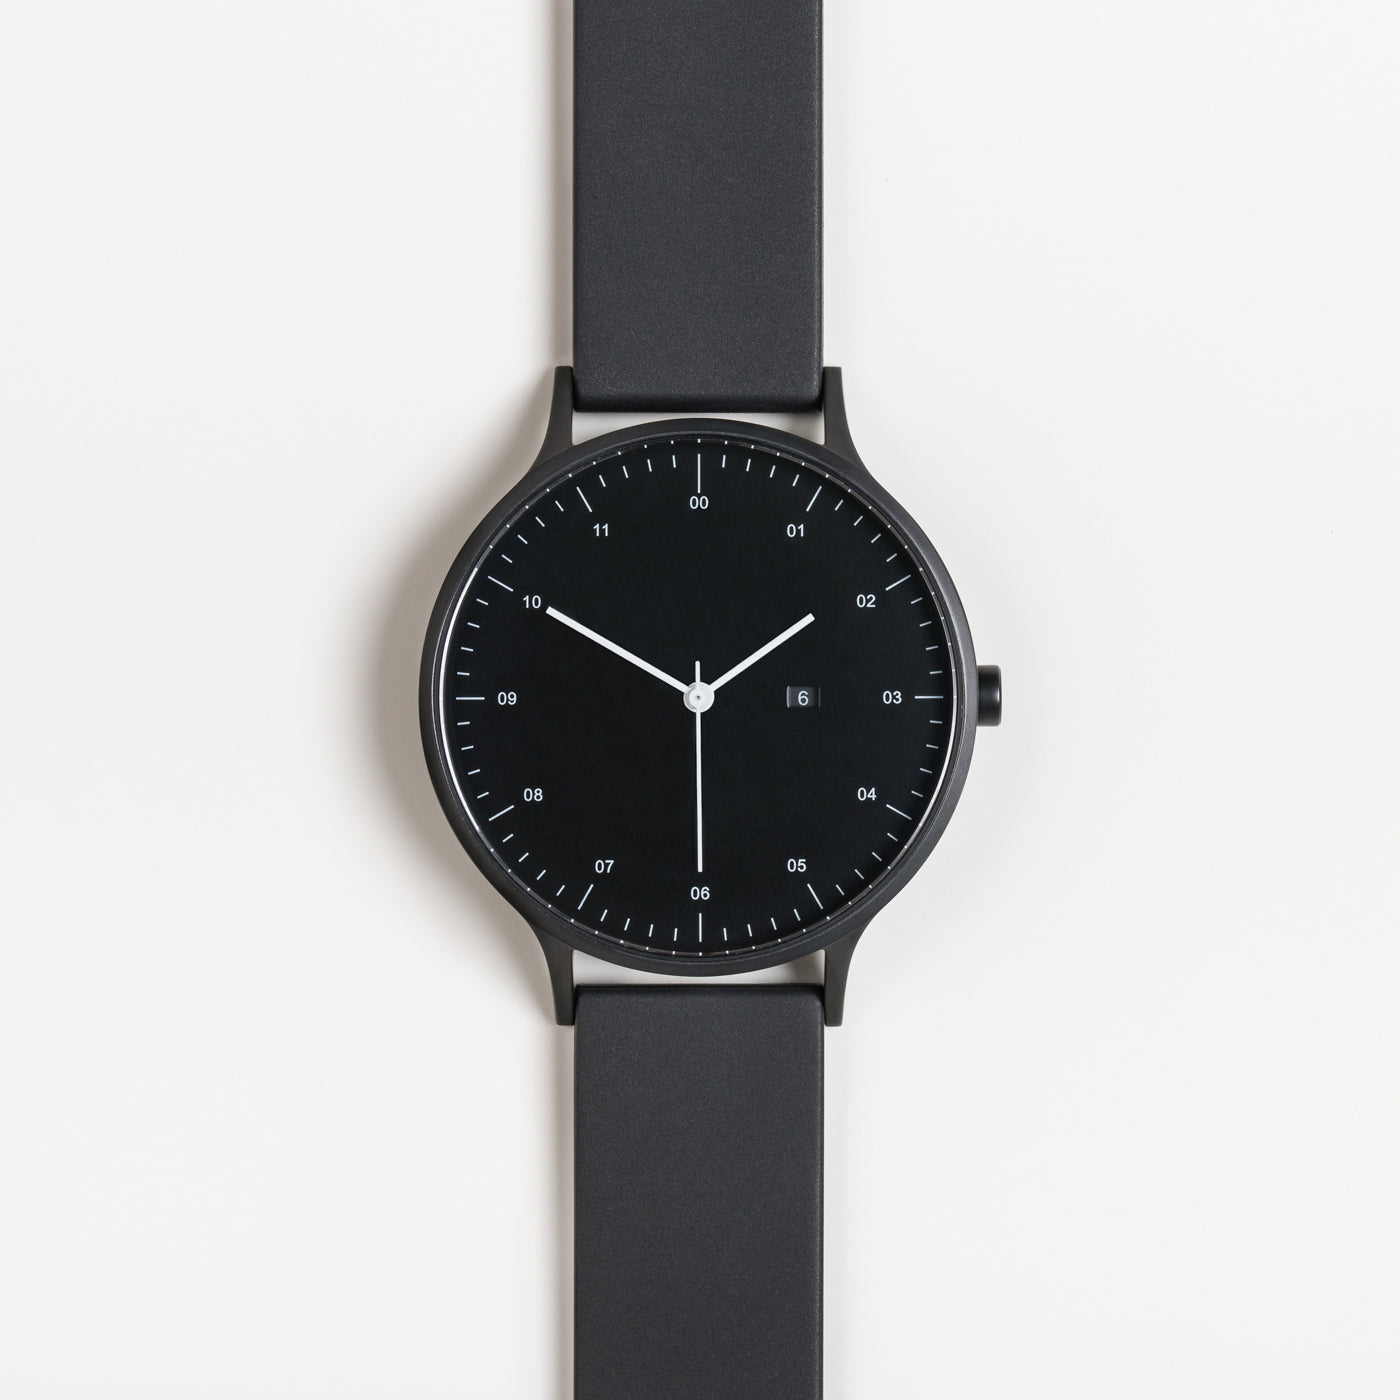 Instrmnt K Watch in K-100 in Black / Black